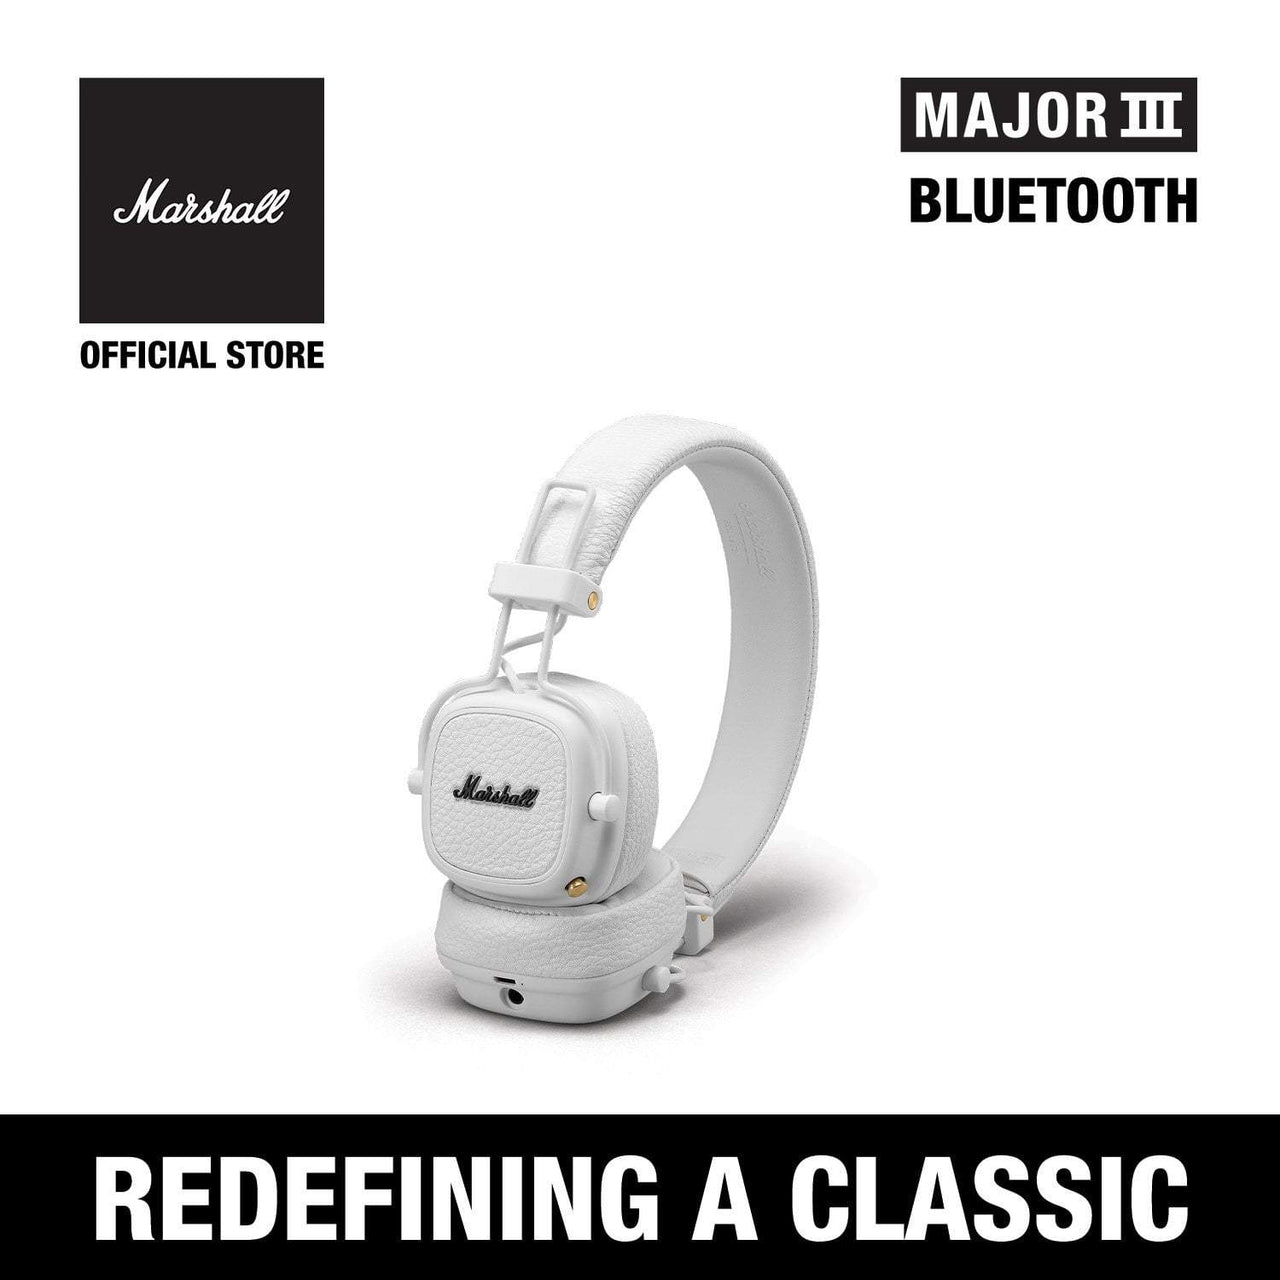 Major III Bluetooth White [Exclusive Partner], Headphones, Marshall Headphones, ASH Asia